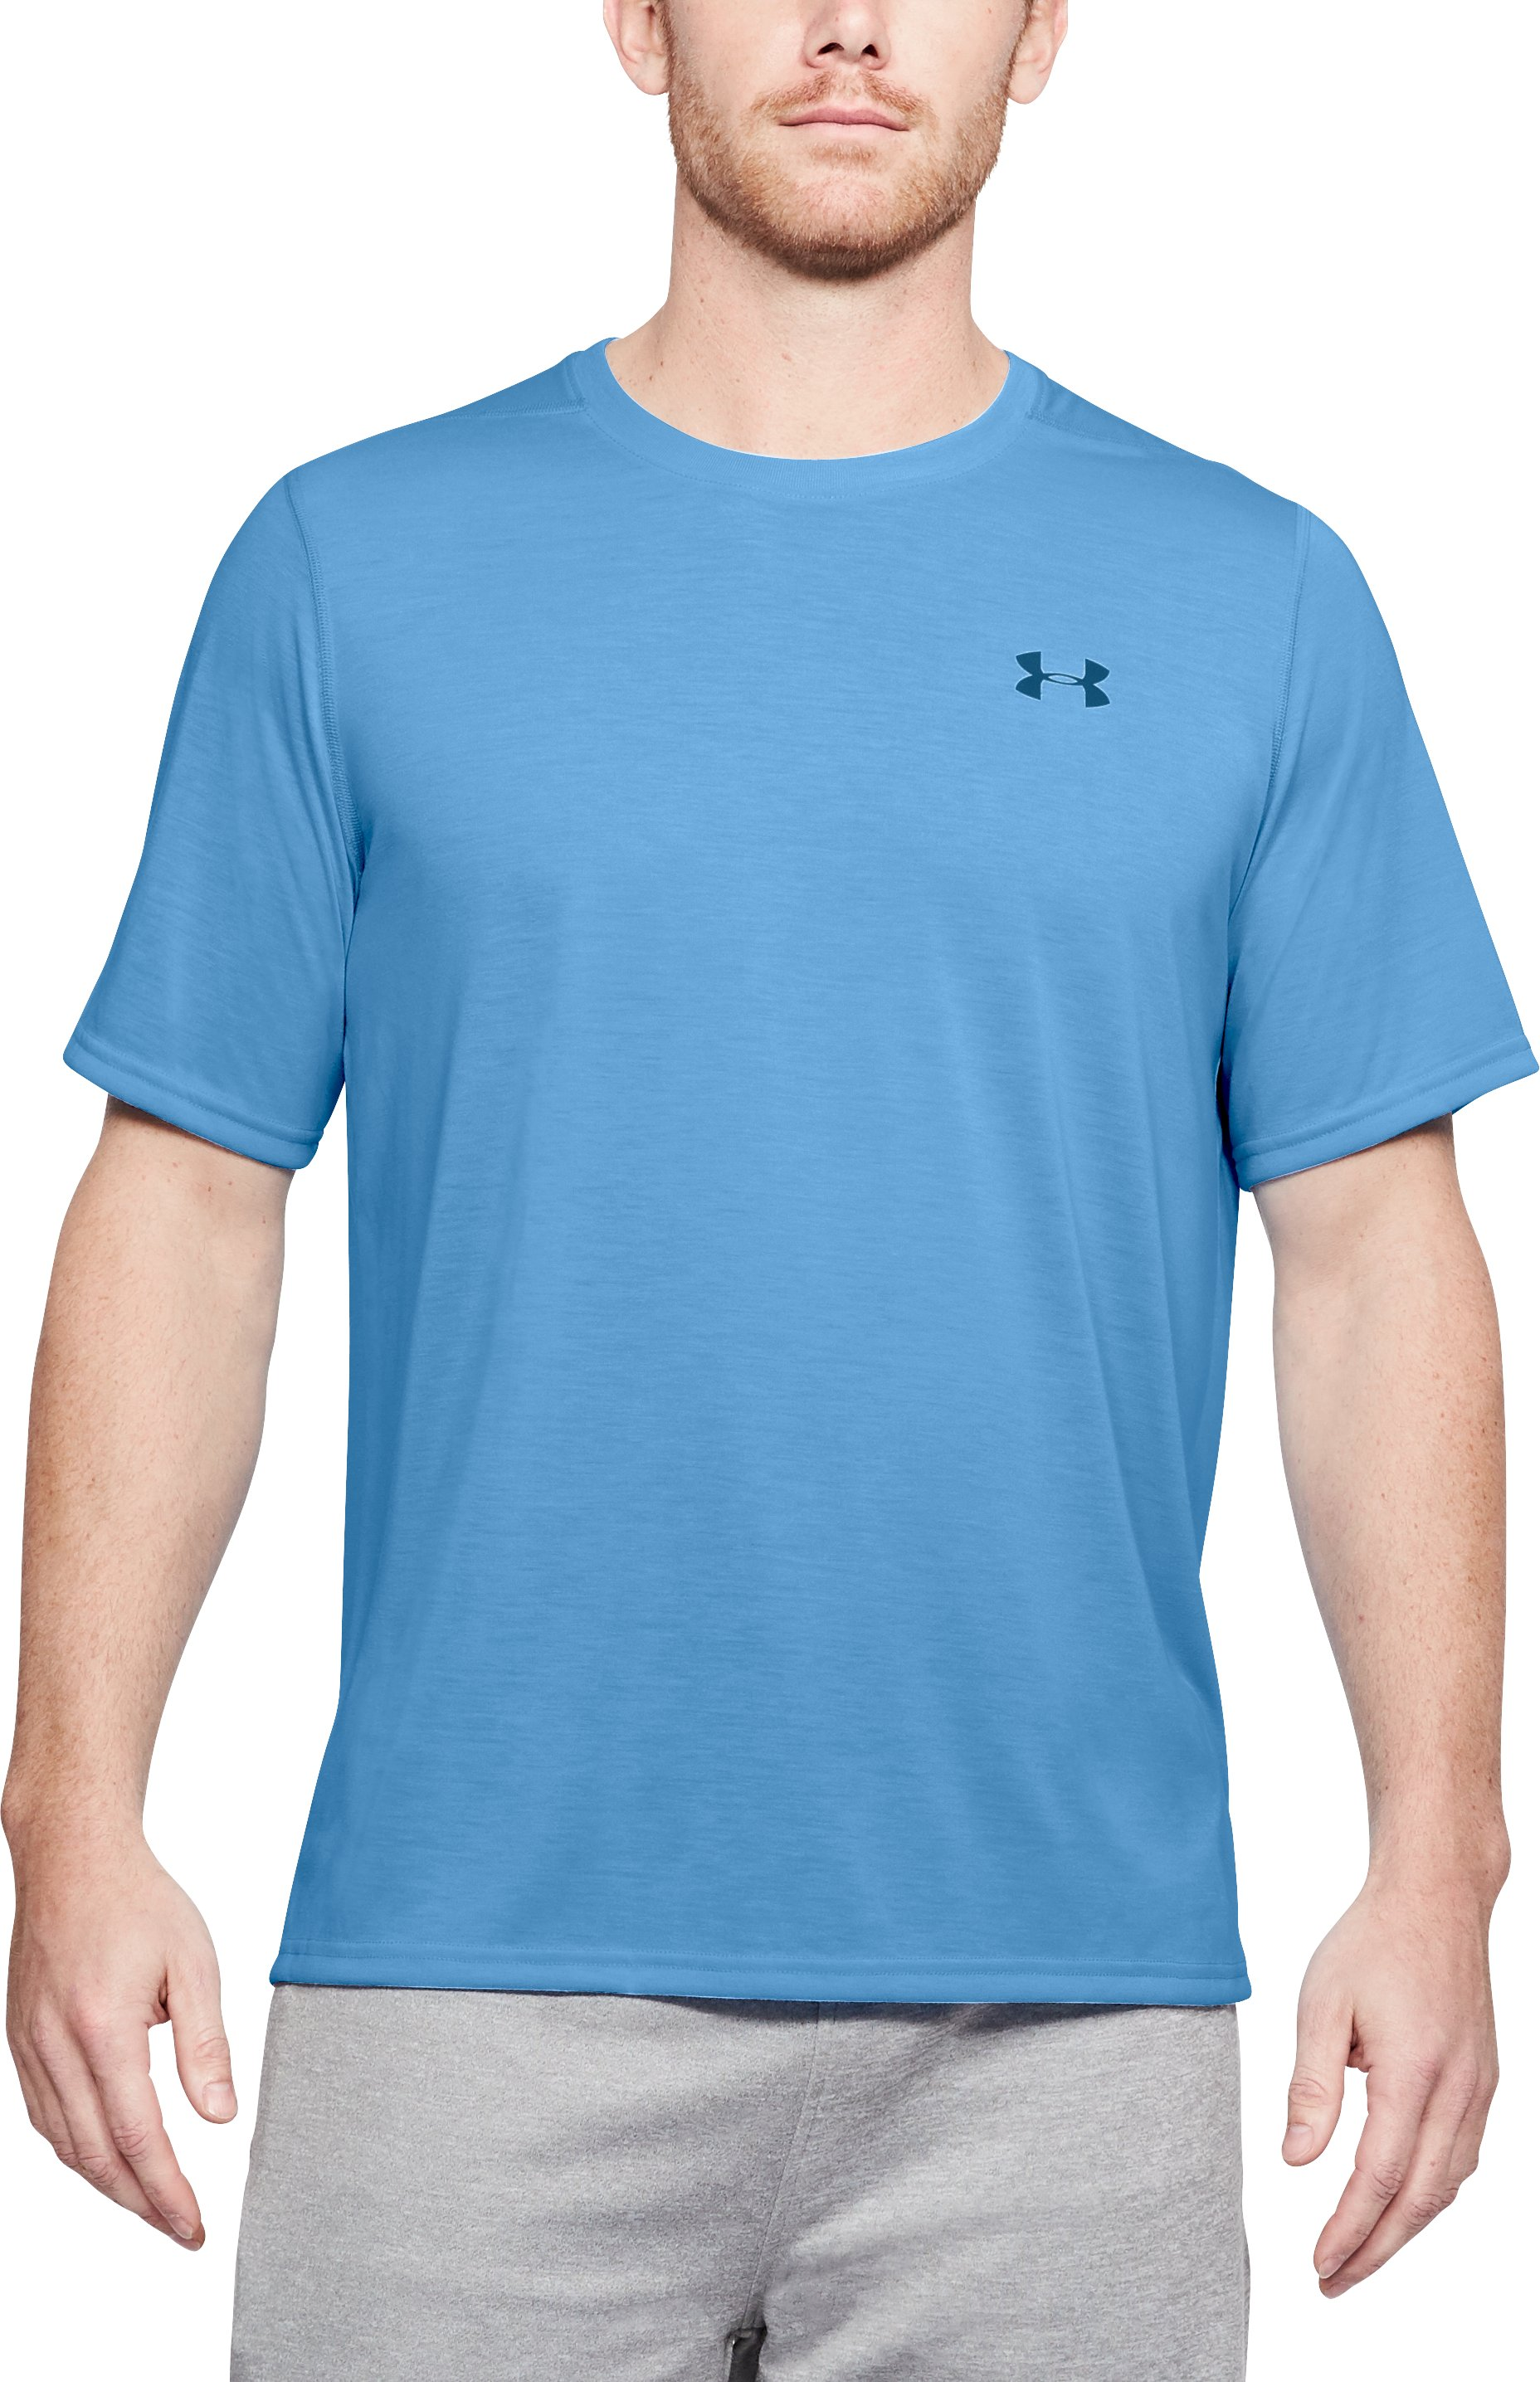 carolina blue t-shirt Men's UA Threadborne Siro T-Shirt Love my shirt!...Love it!...Almost Perfect!